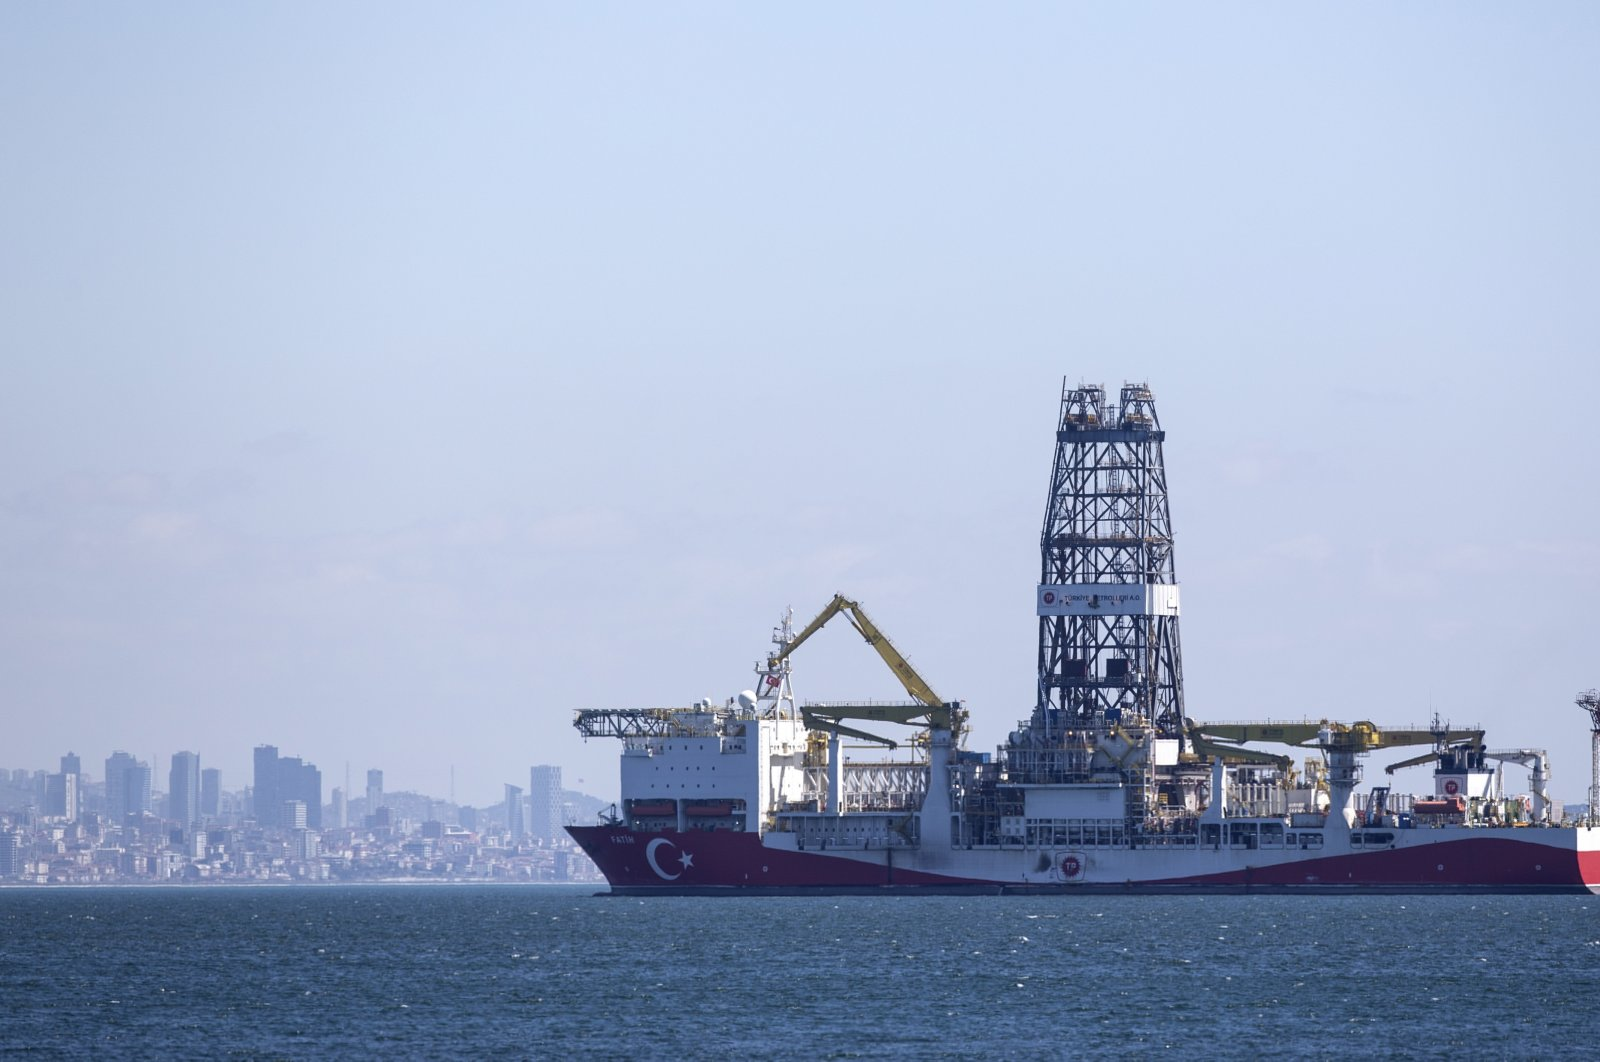 The Turkish drilling vessel Fatih waits on the shores of the Marmara Sea in Istanbul, Turkey, April 9, 2020. (EPA Photo)